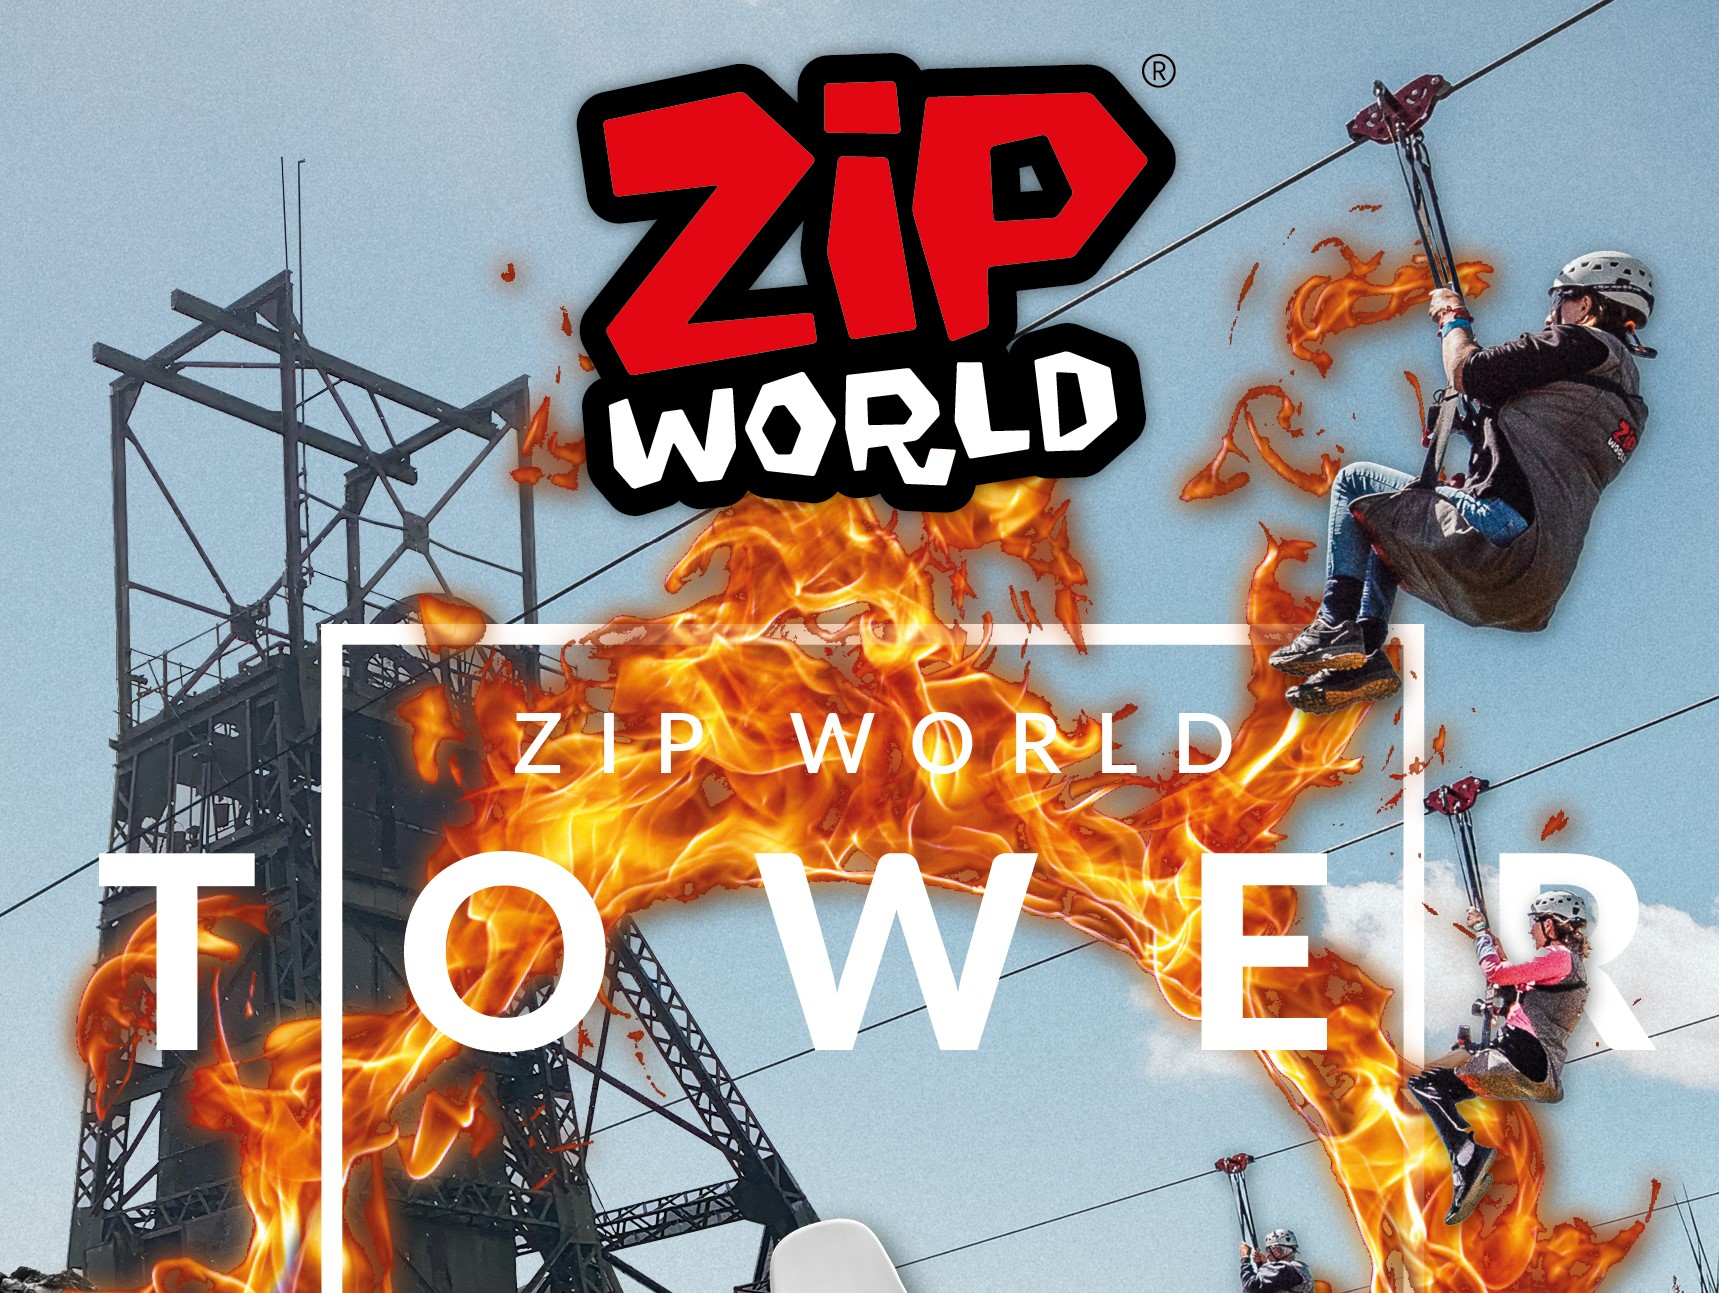 £4.4 Million Investment Awarded to Zip World for CCT Tower Colliery Site